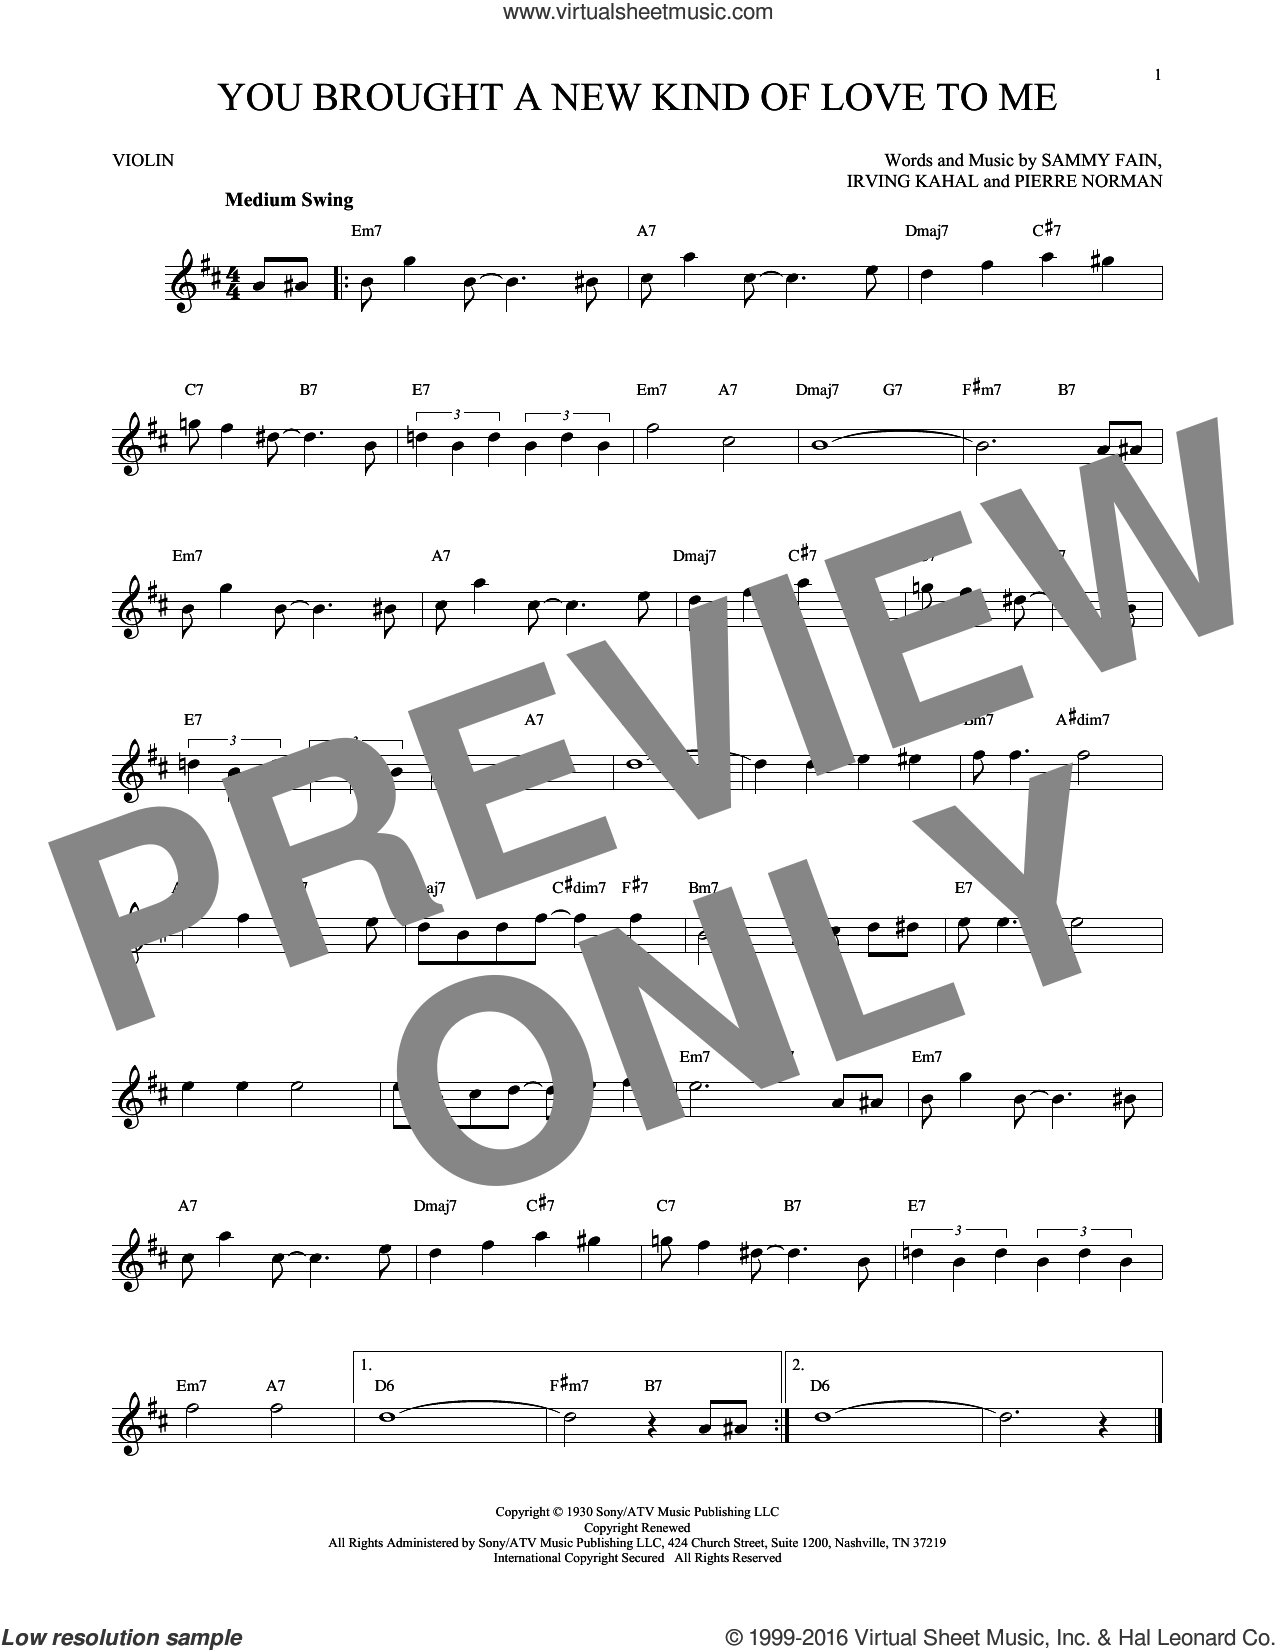 You Brought A New Kind Of Love To Me sheet music for violin solo by Sammy Fain, Scott Hamilton, Irving Kahal and Pierre Norman, intermediate skill level